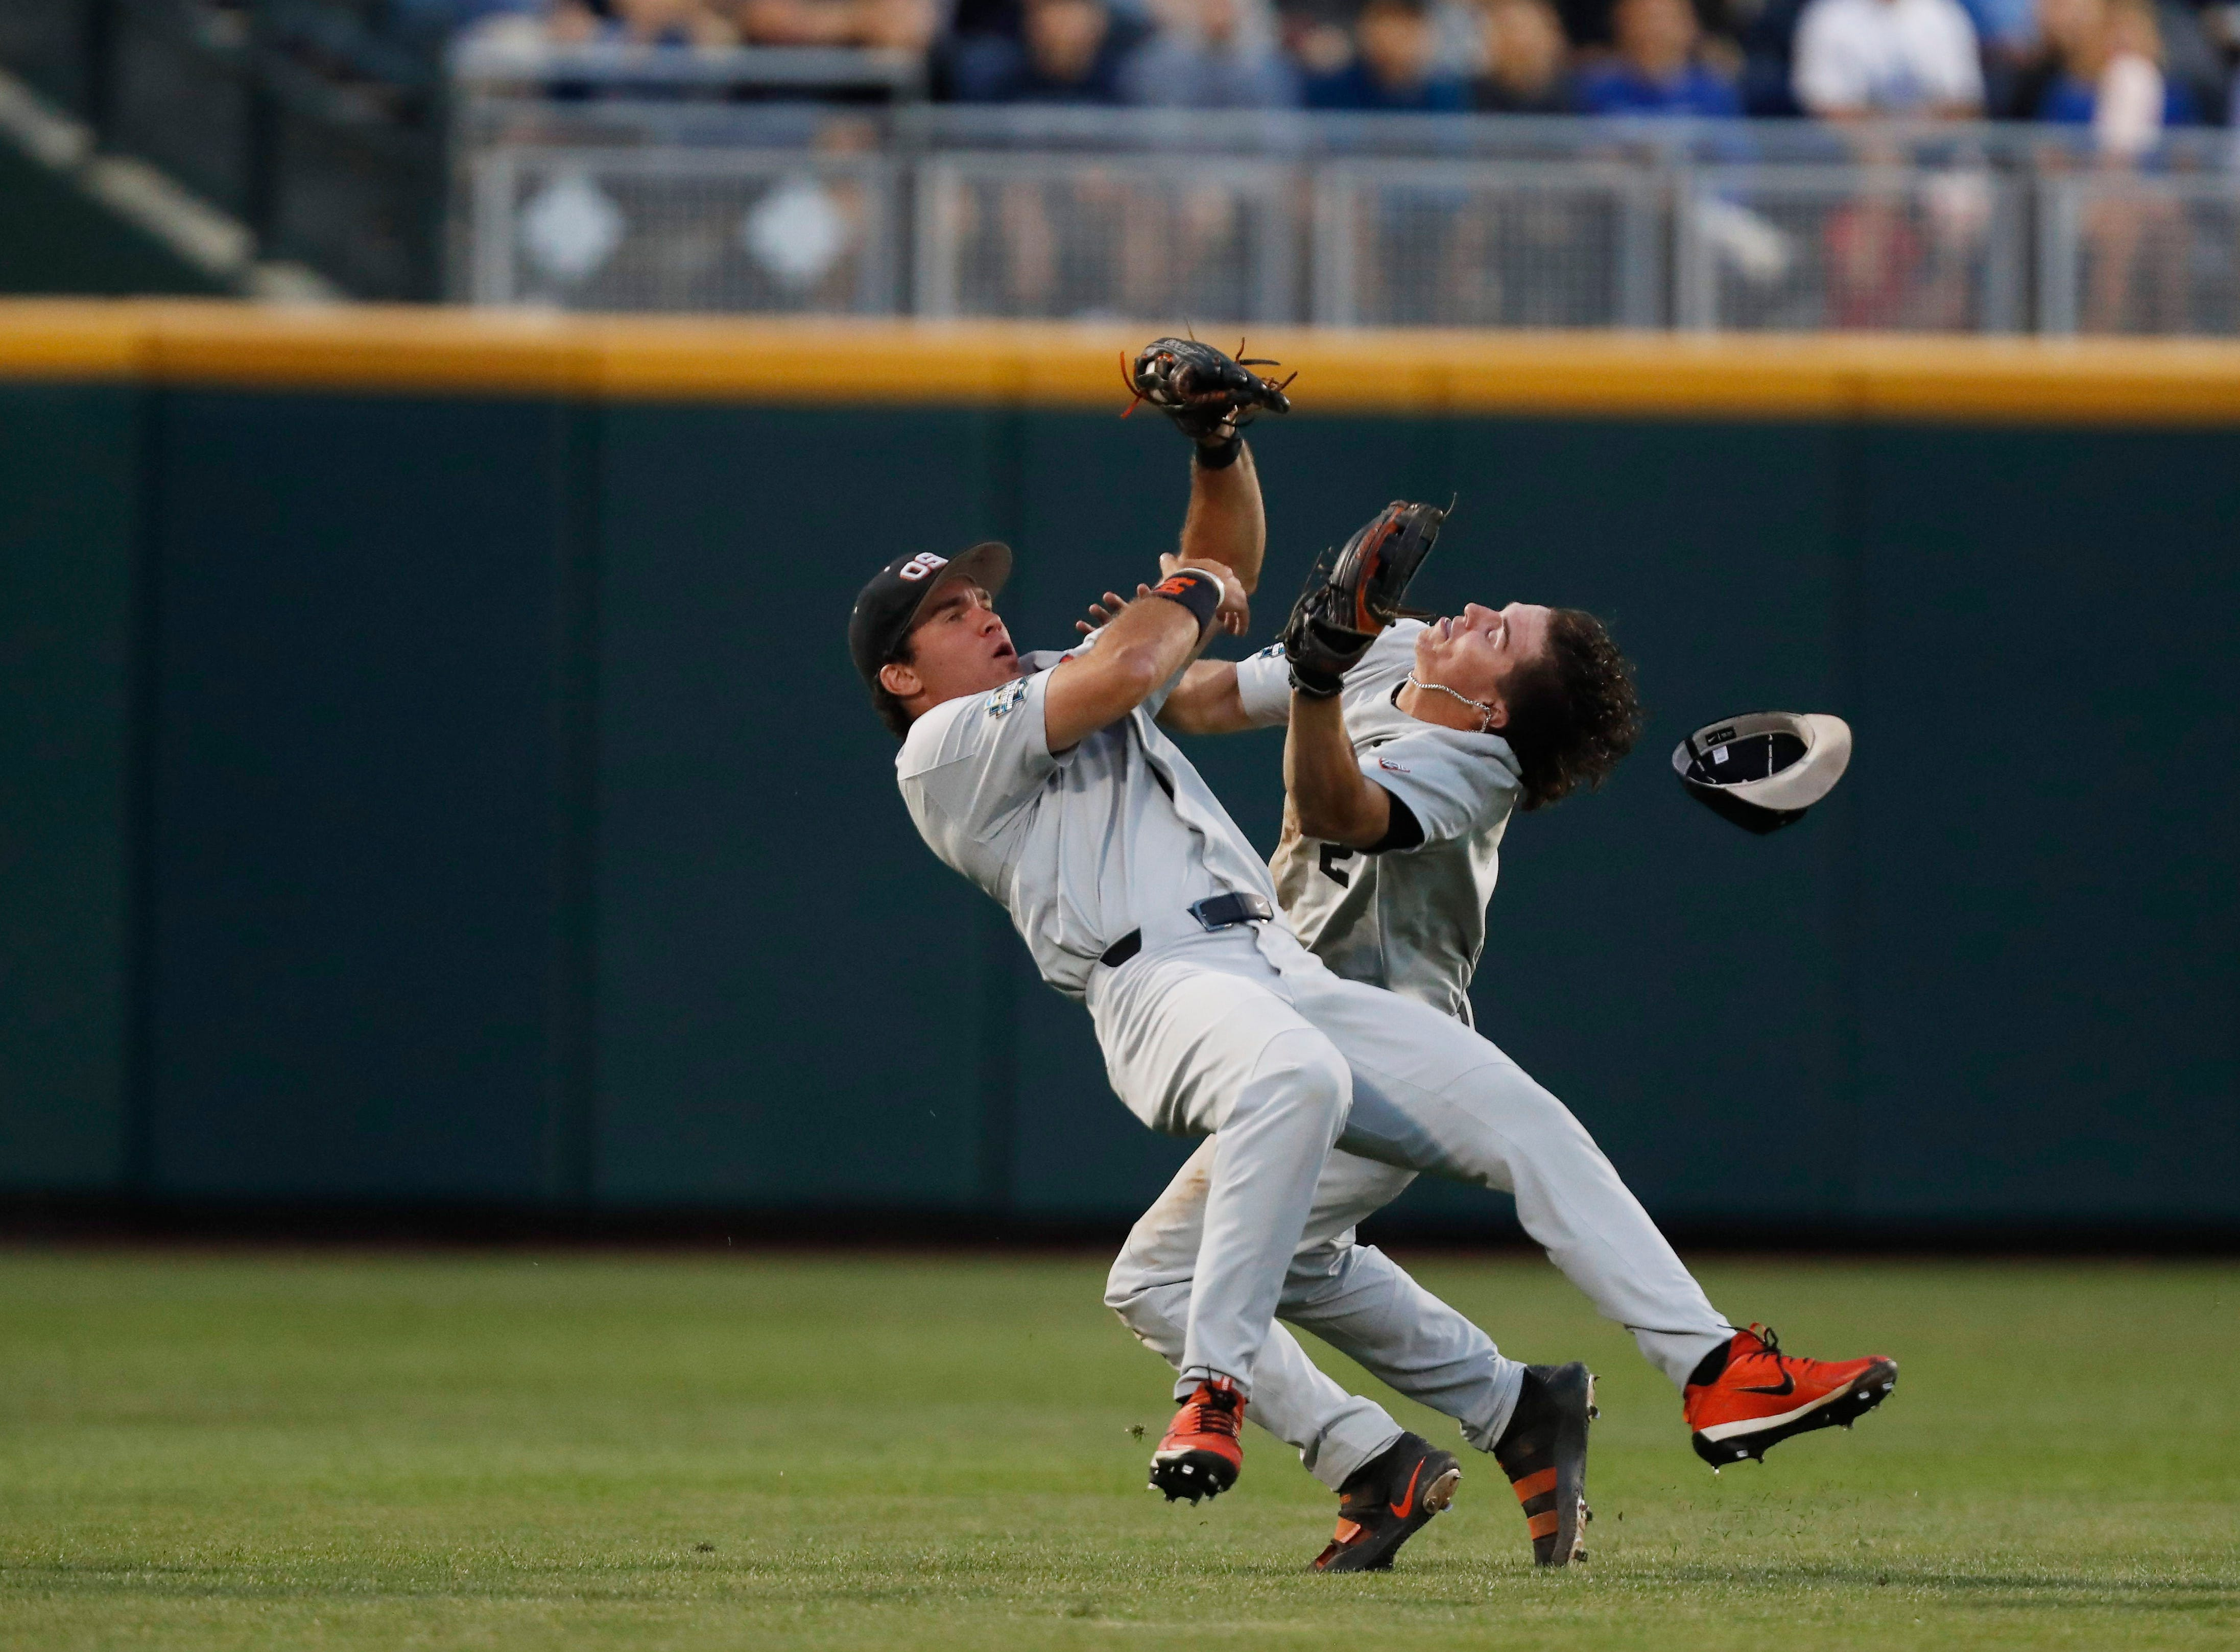 June 20: Oregon State Beavers center fielder Jack Anderson makes a catch while colliding with shortstop Cadyn Grenier (2) during the fourth inning of a College World Series game against the North Carolina Tar Heels.